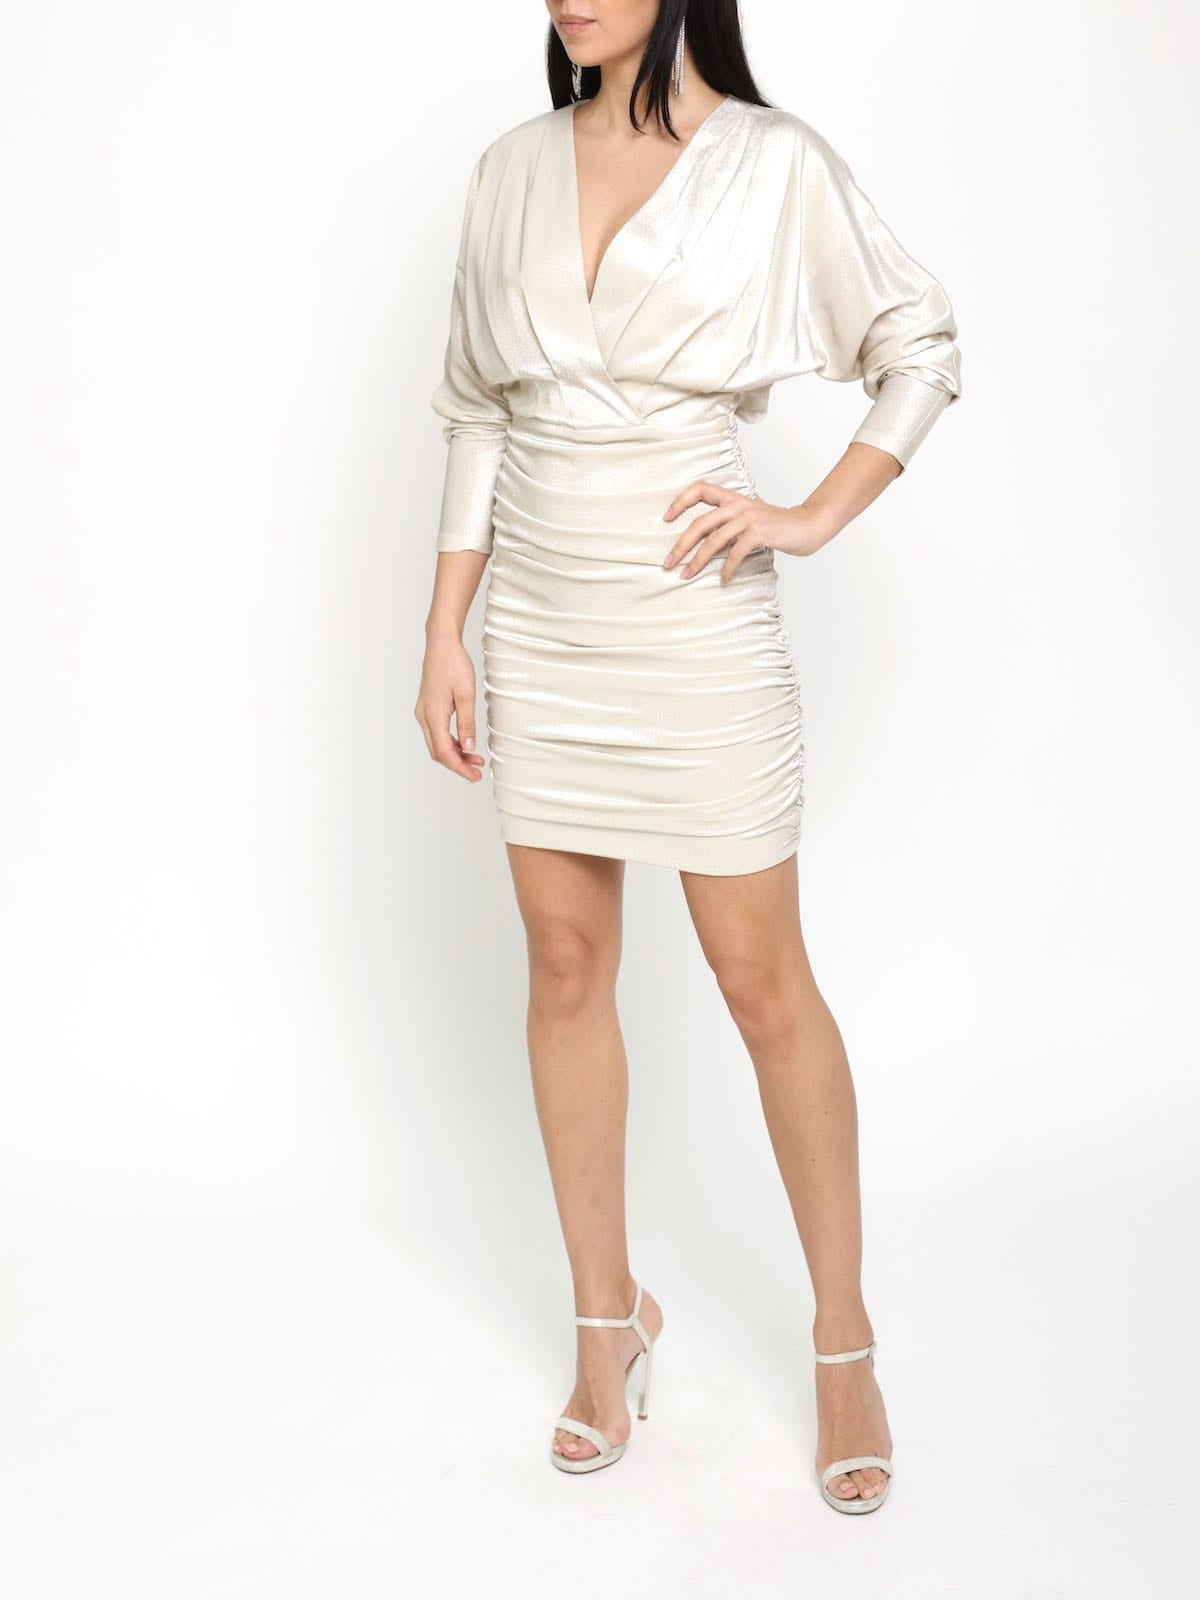 SAFIRO Platinum Pearl Dress